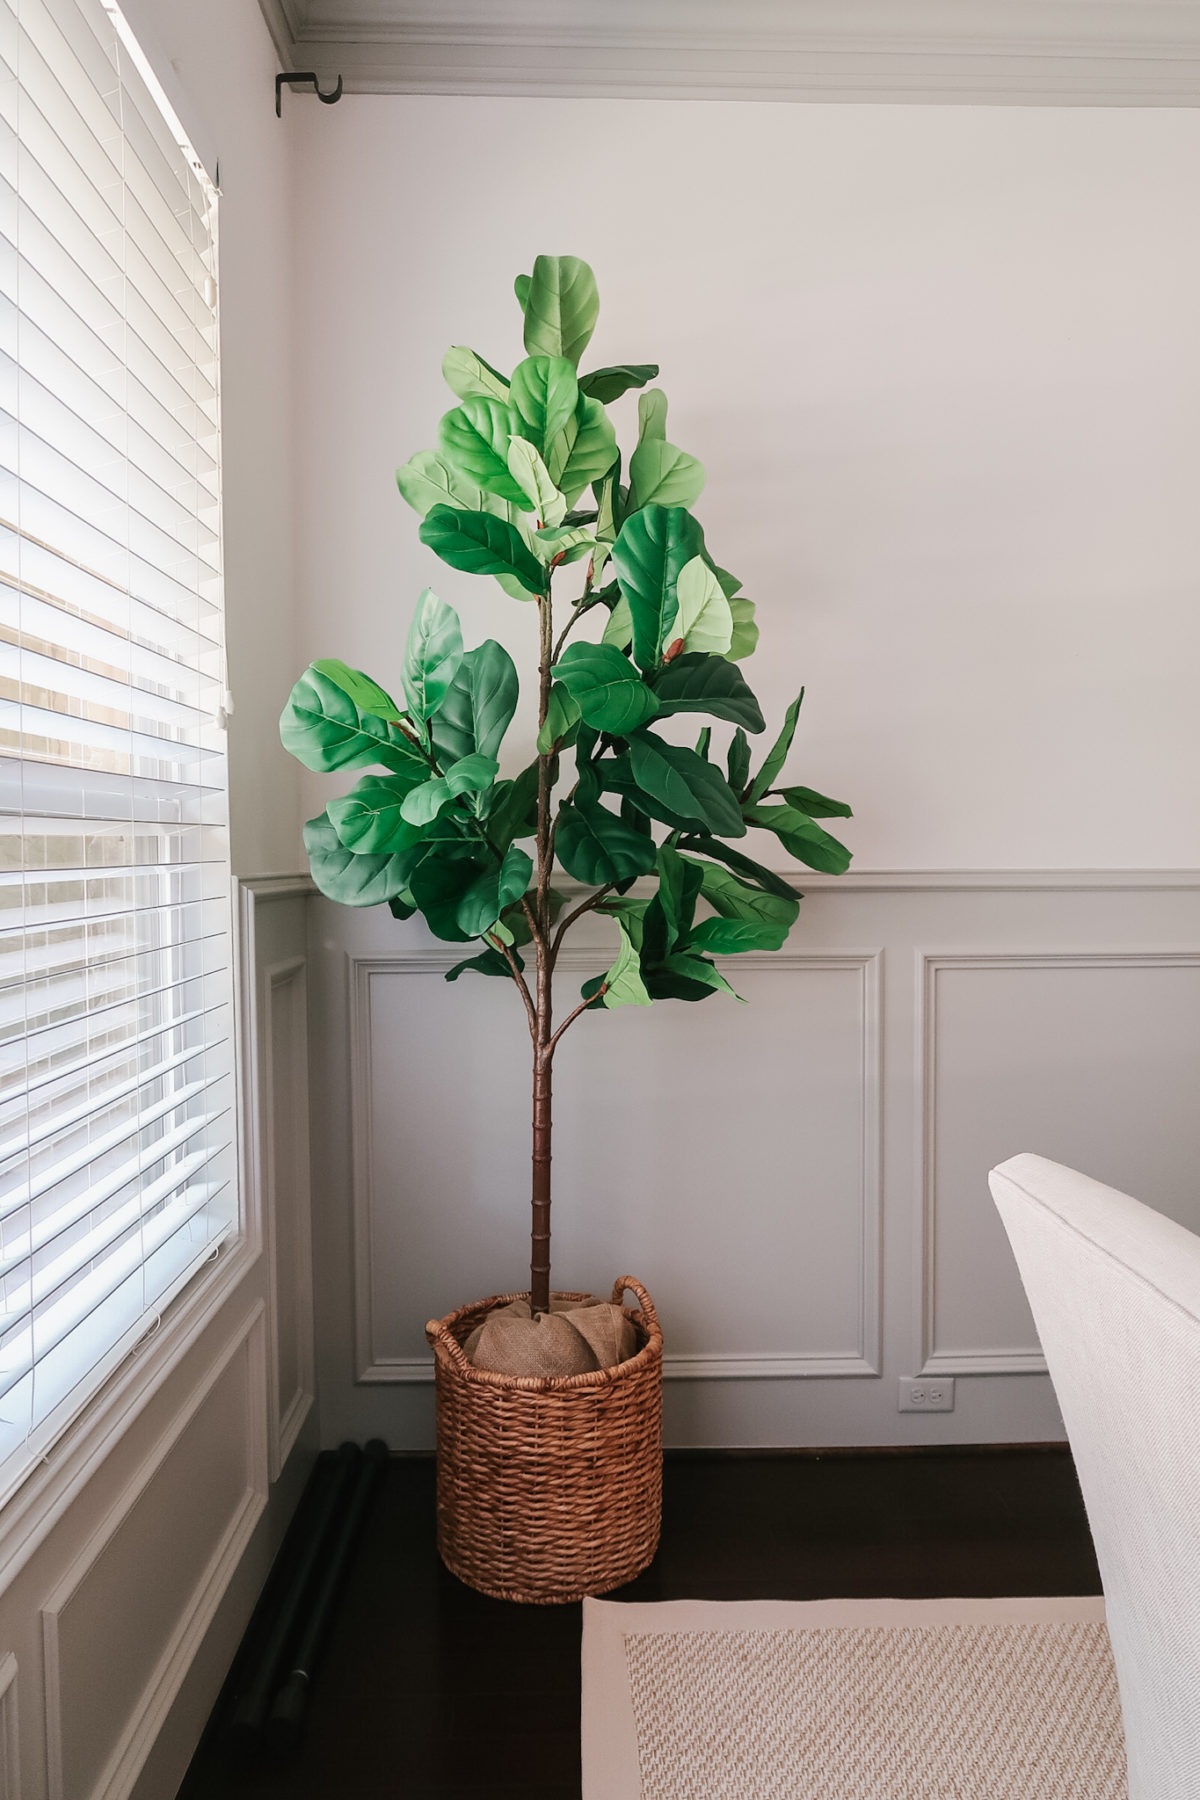 Pottery Barn faux fiddle leaf fig tree